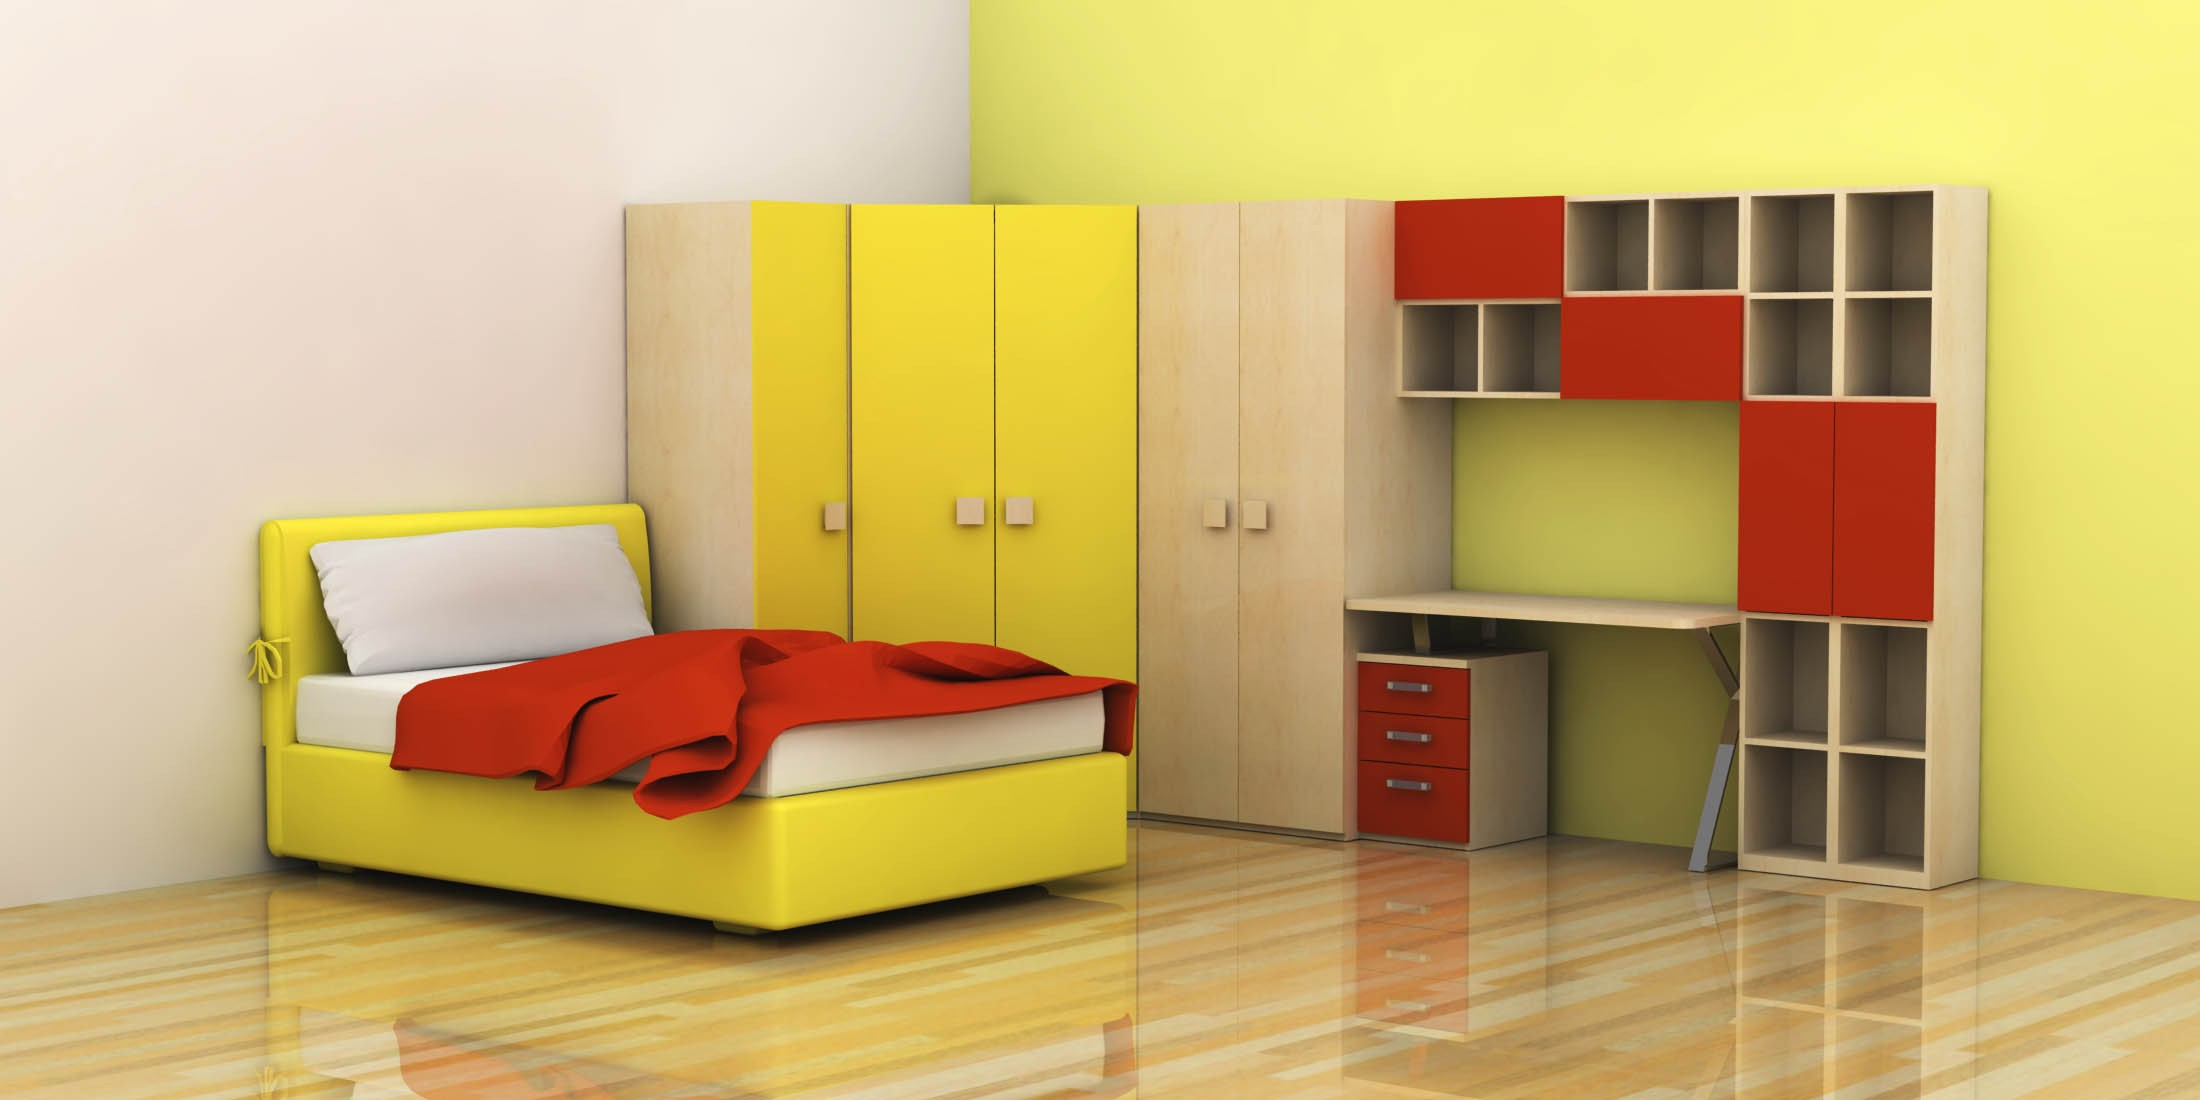 Etonnant Minimalist Contemporary Kids Room With Contrast Red And Yellow Coloring  Scheme